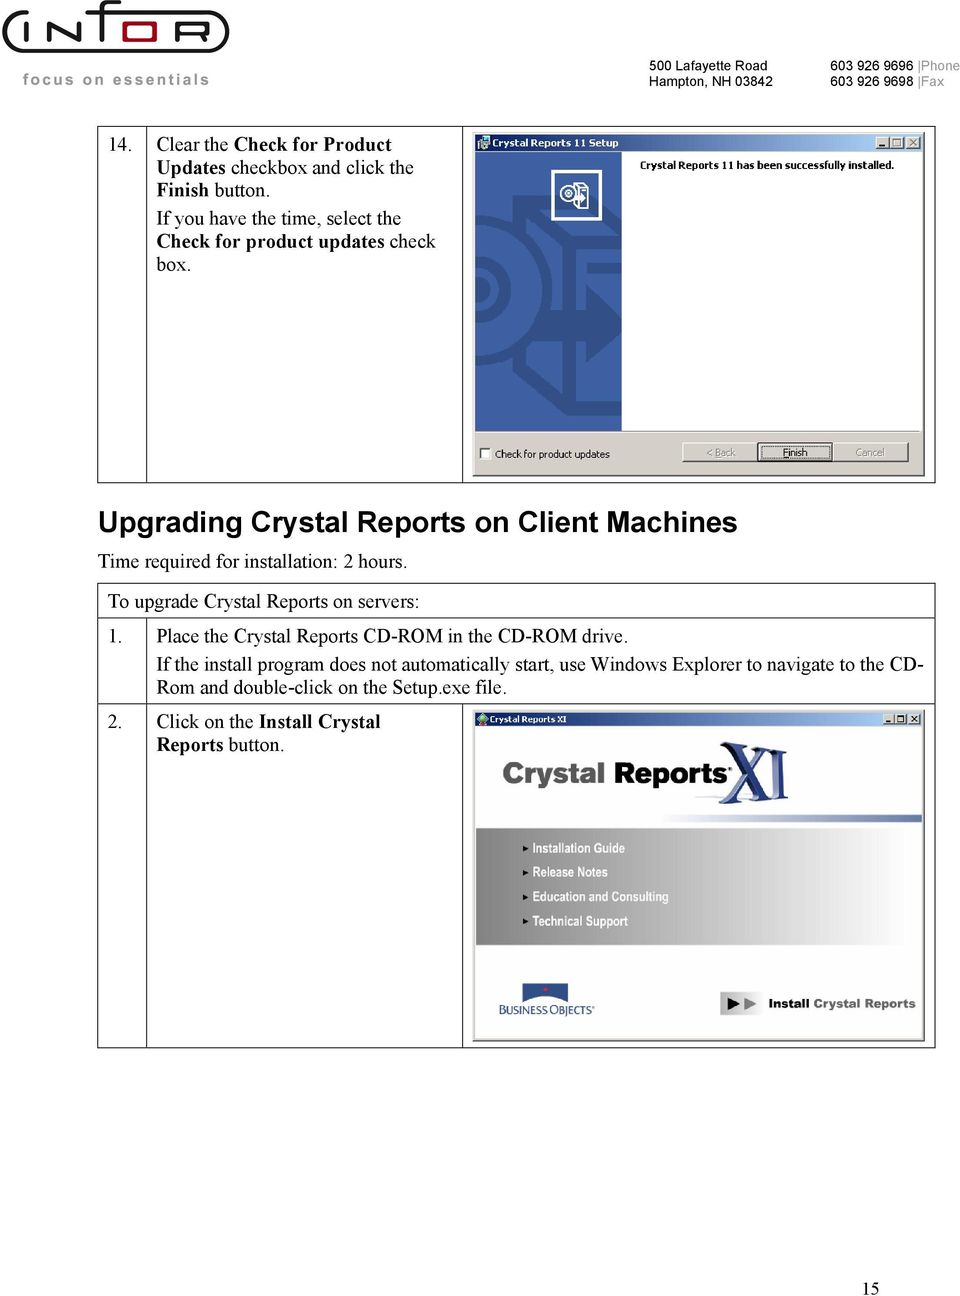 Upgrading Crystal Reports on Client Machines Time required for installation: 2 hours. To upgrade Crystal Reports on servers: 1.